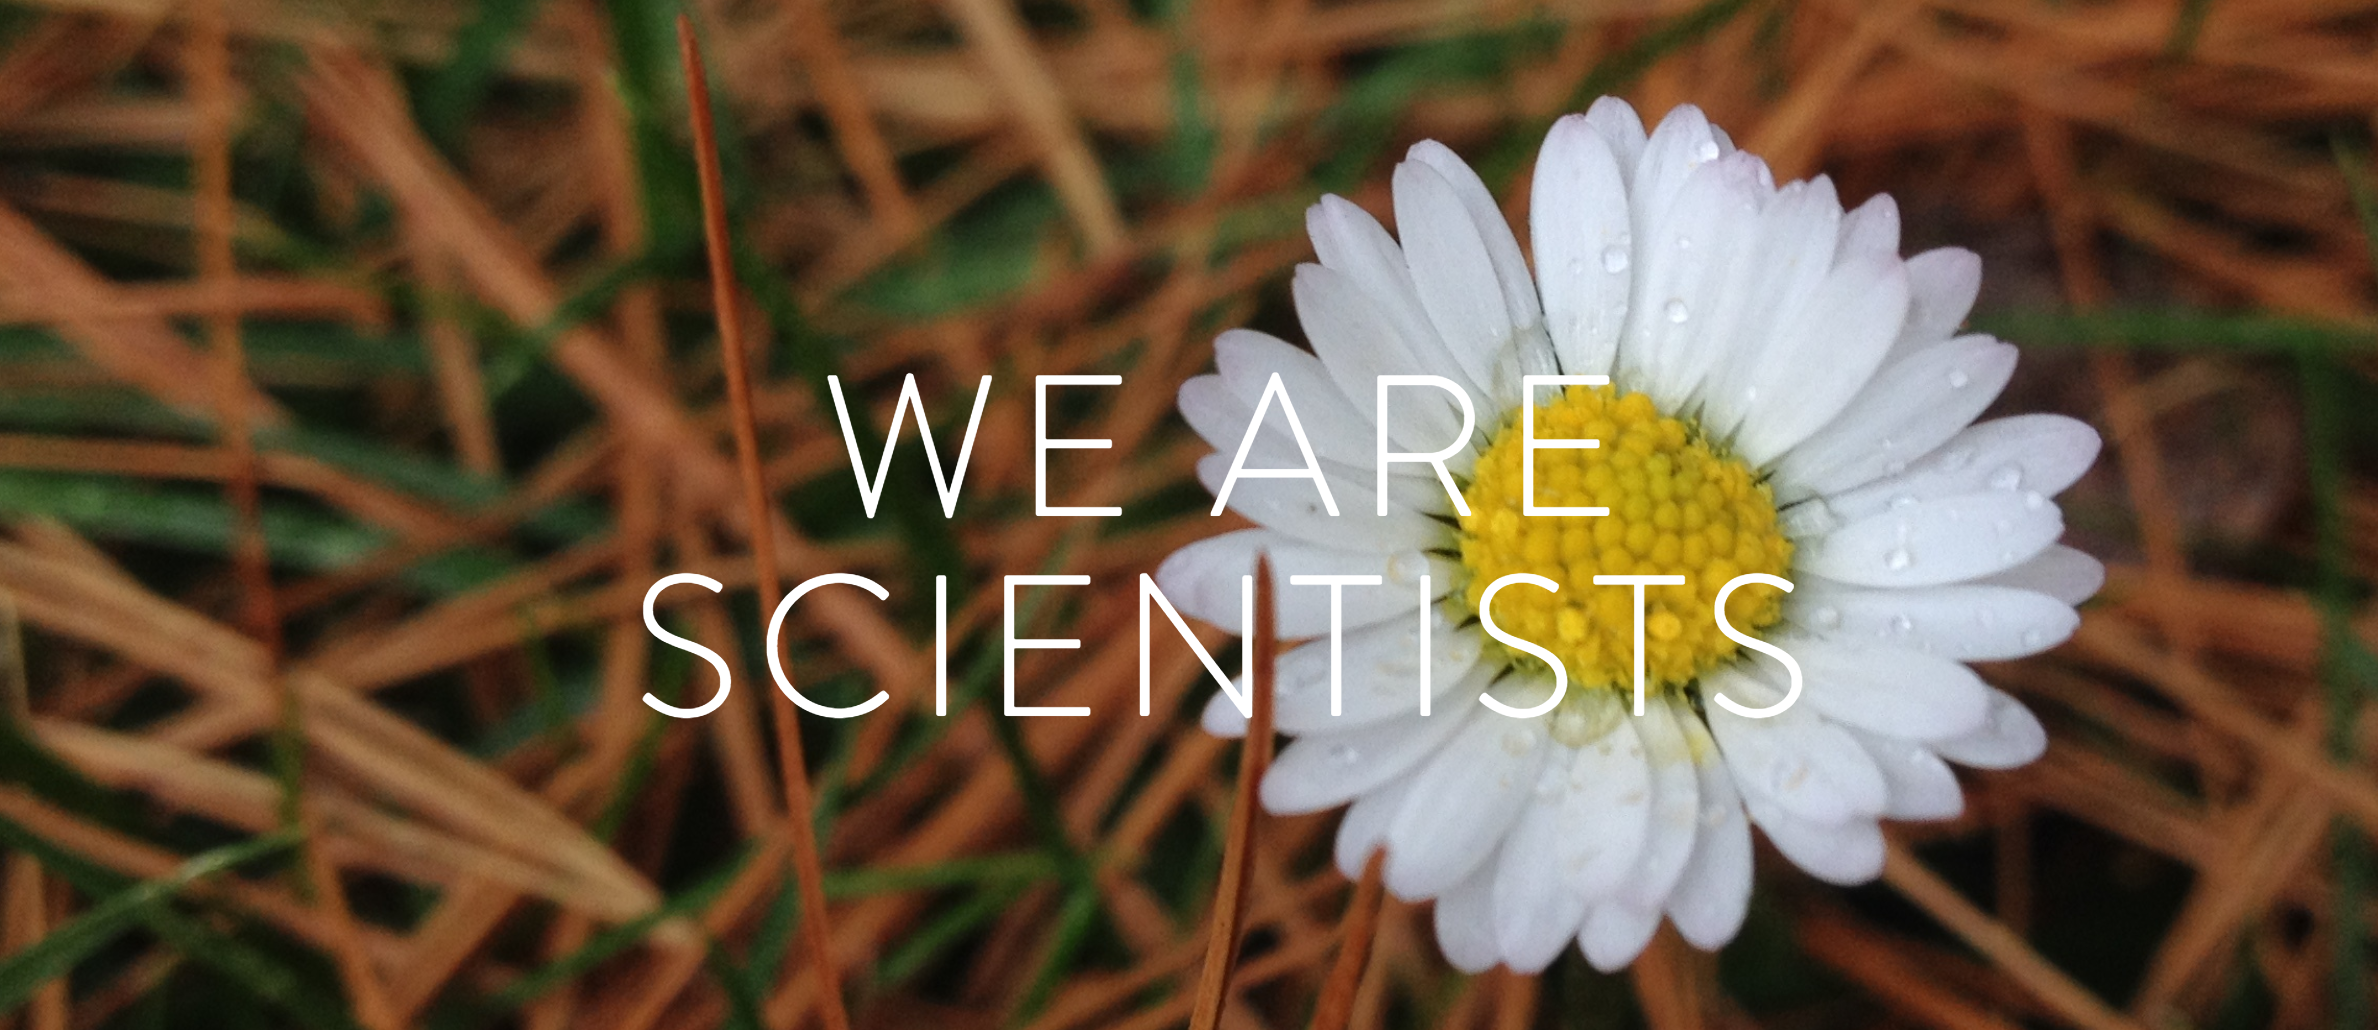 500 women scientists use stem in the fight against trump lady science izmirmasajfo